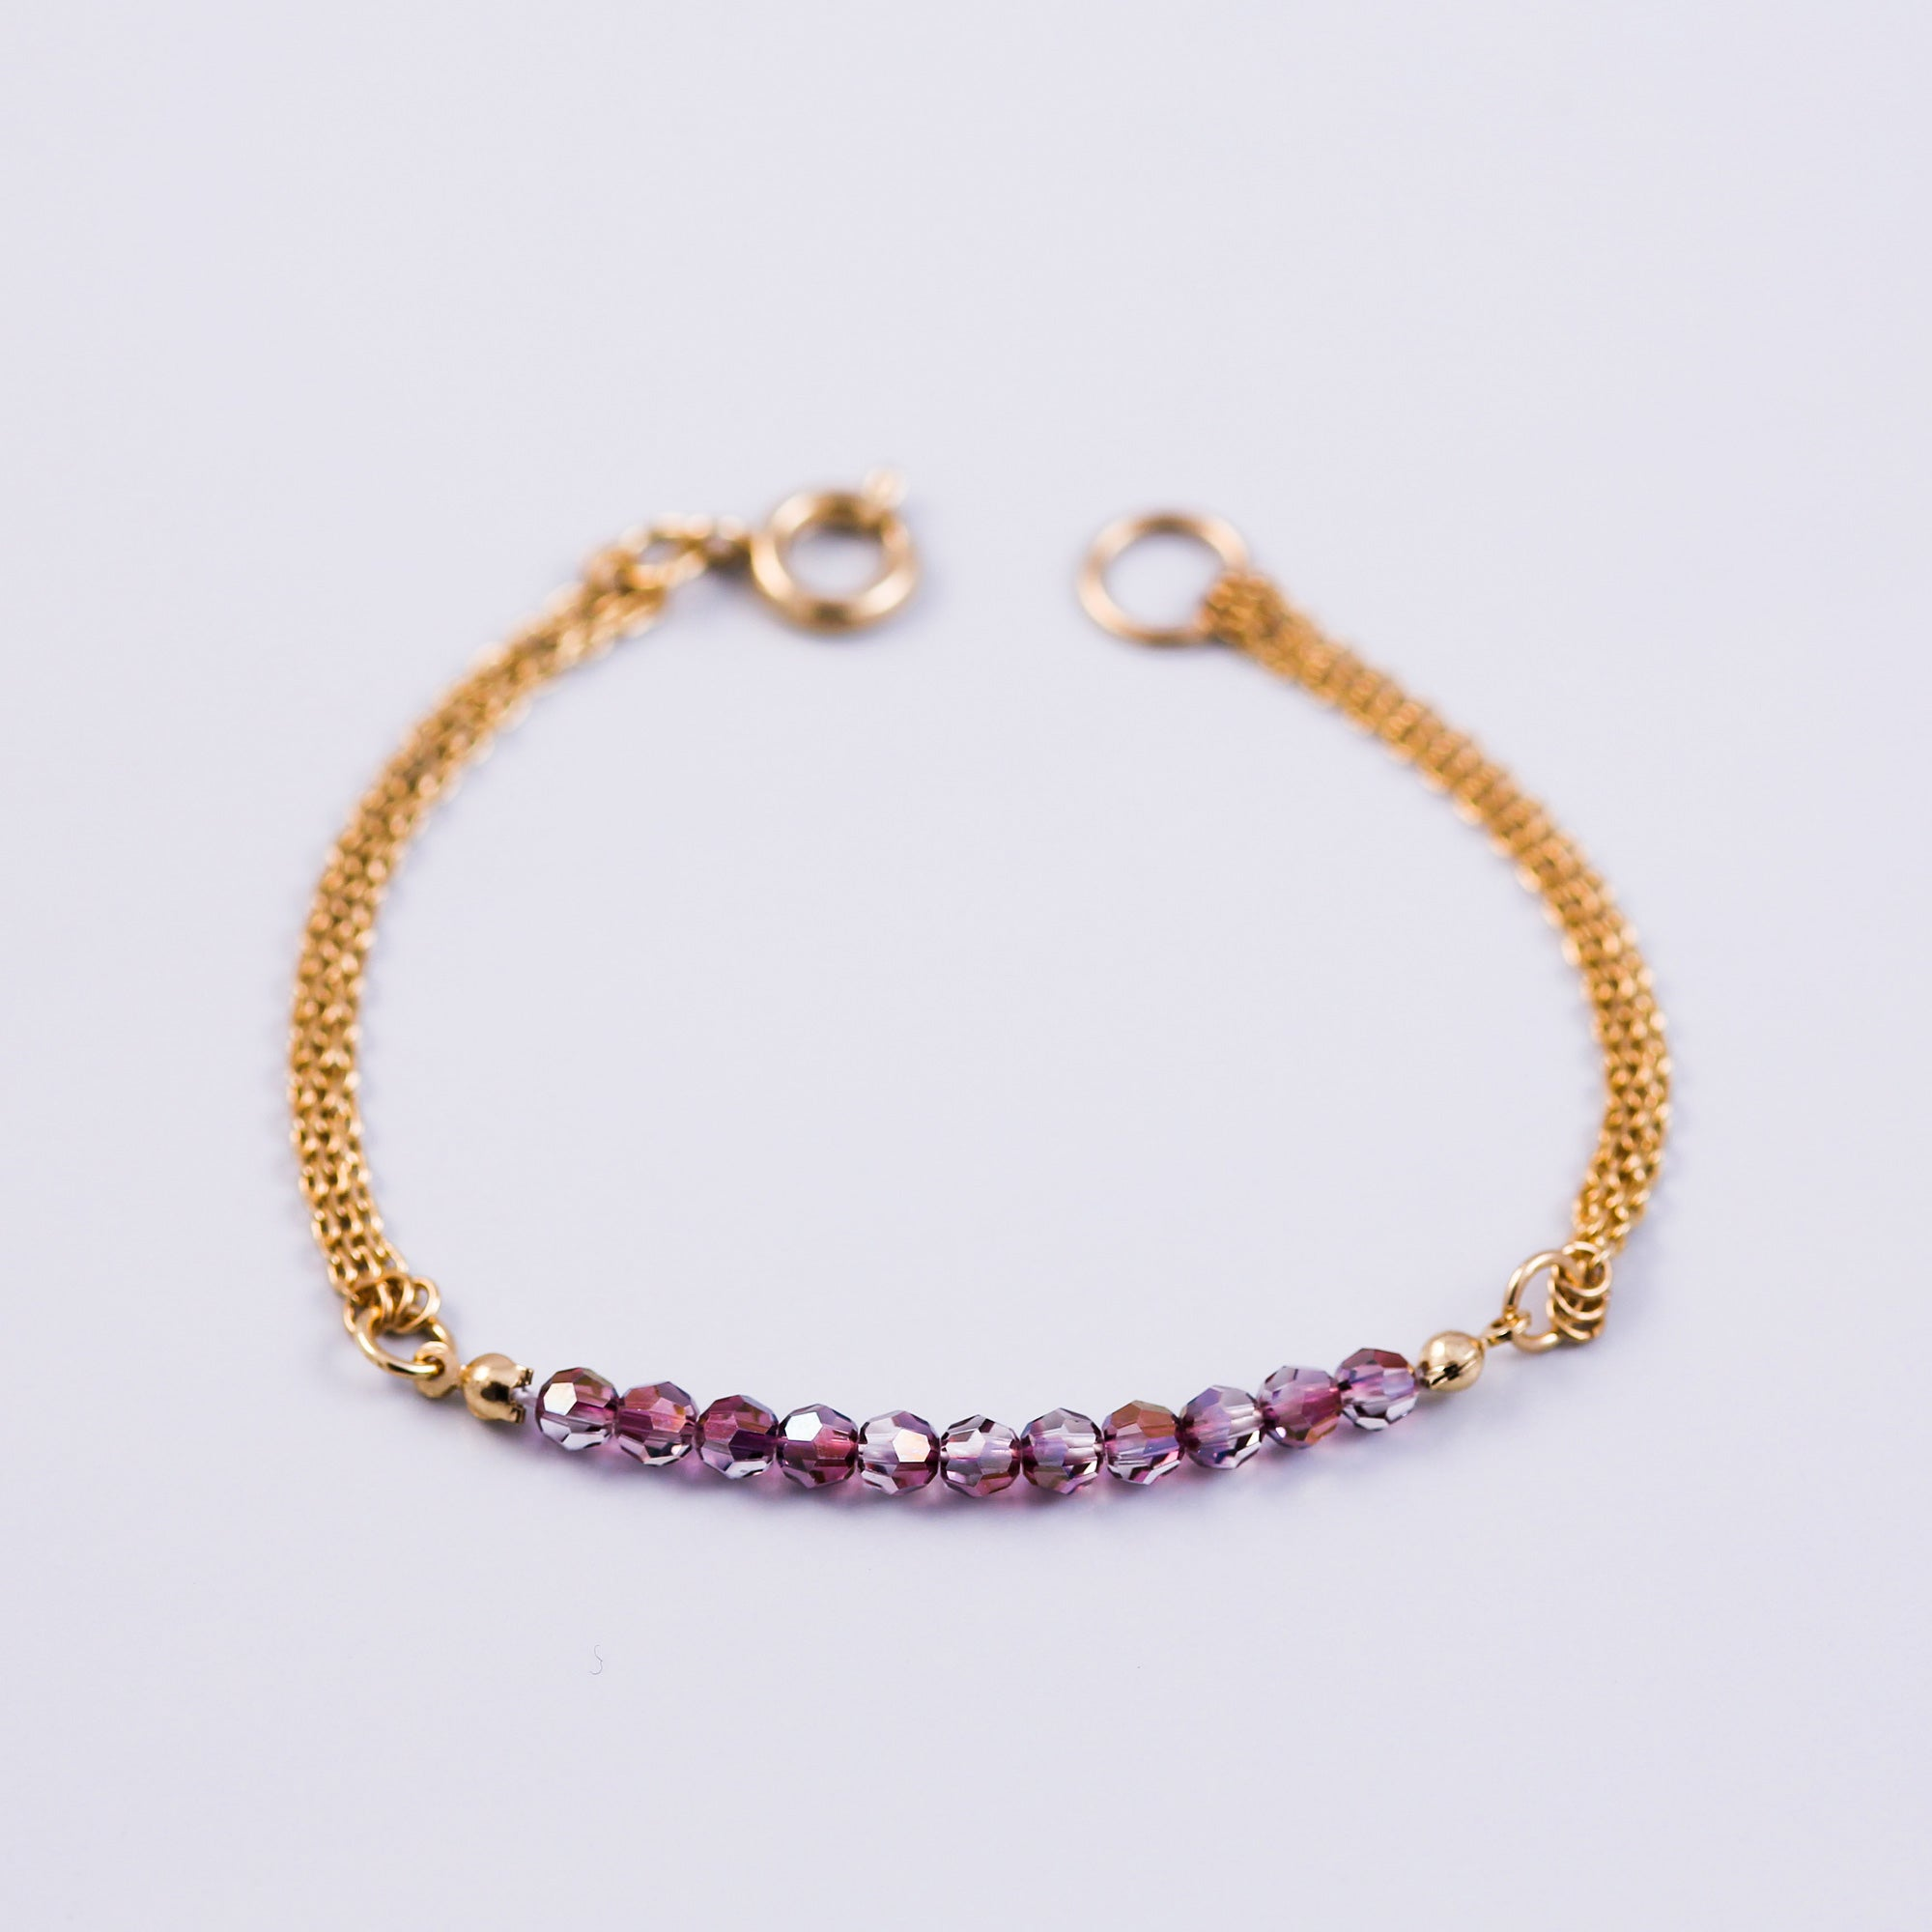 Beaded Bracelet | Friendship Bracelets | Gold & Crystal Lilac Shadow